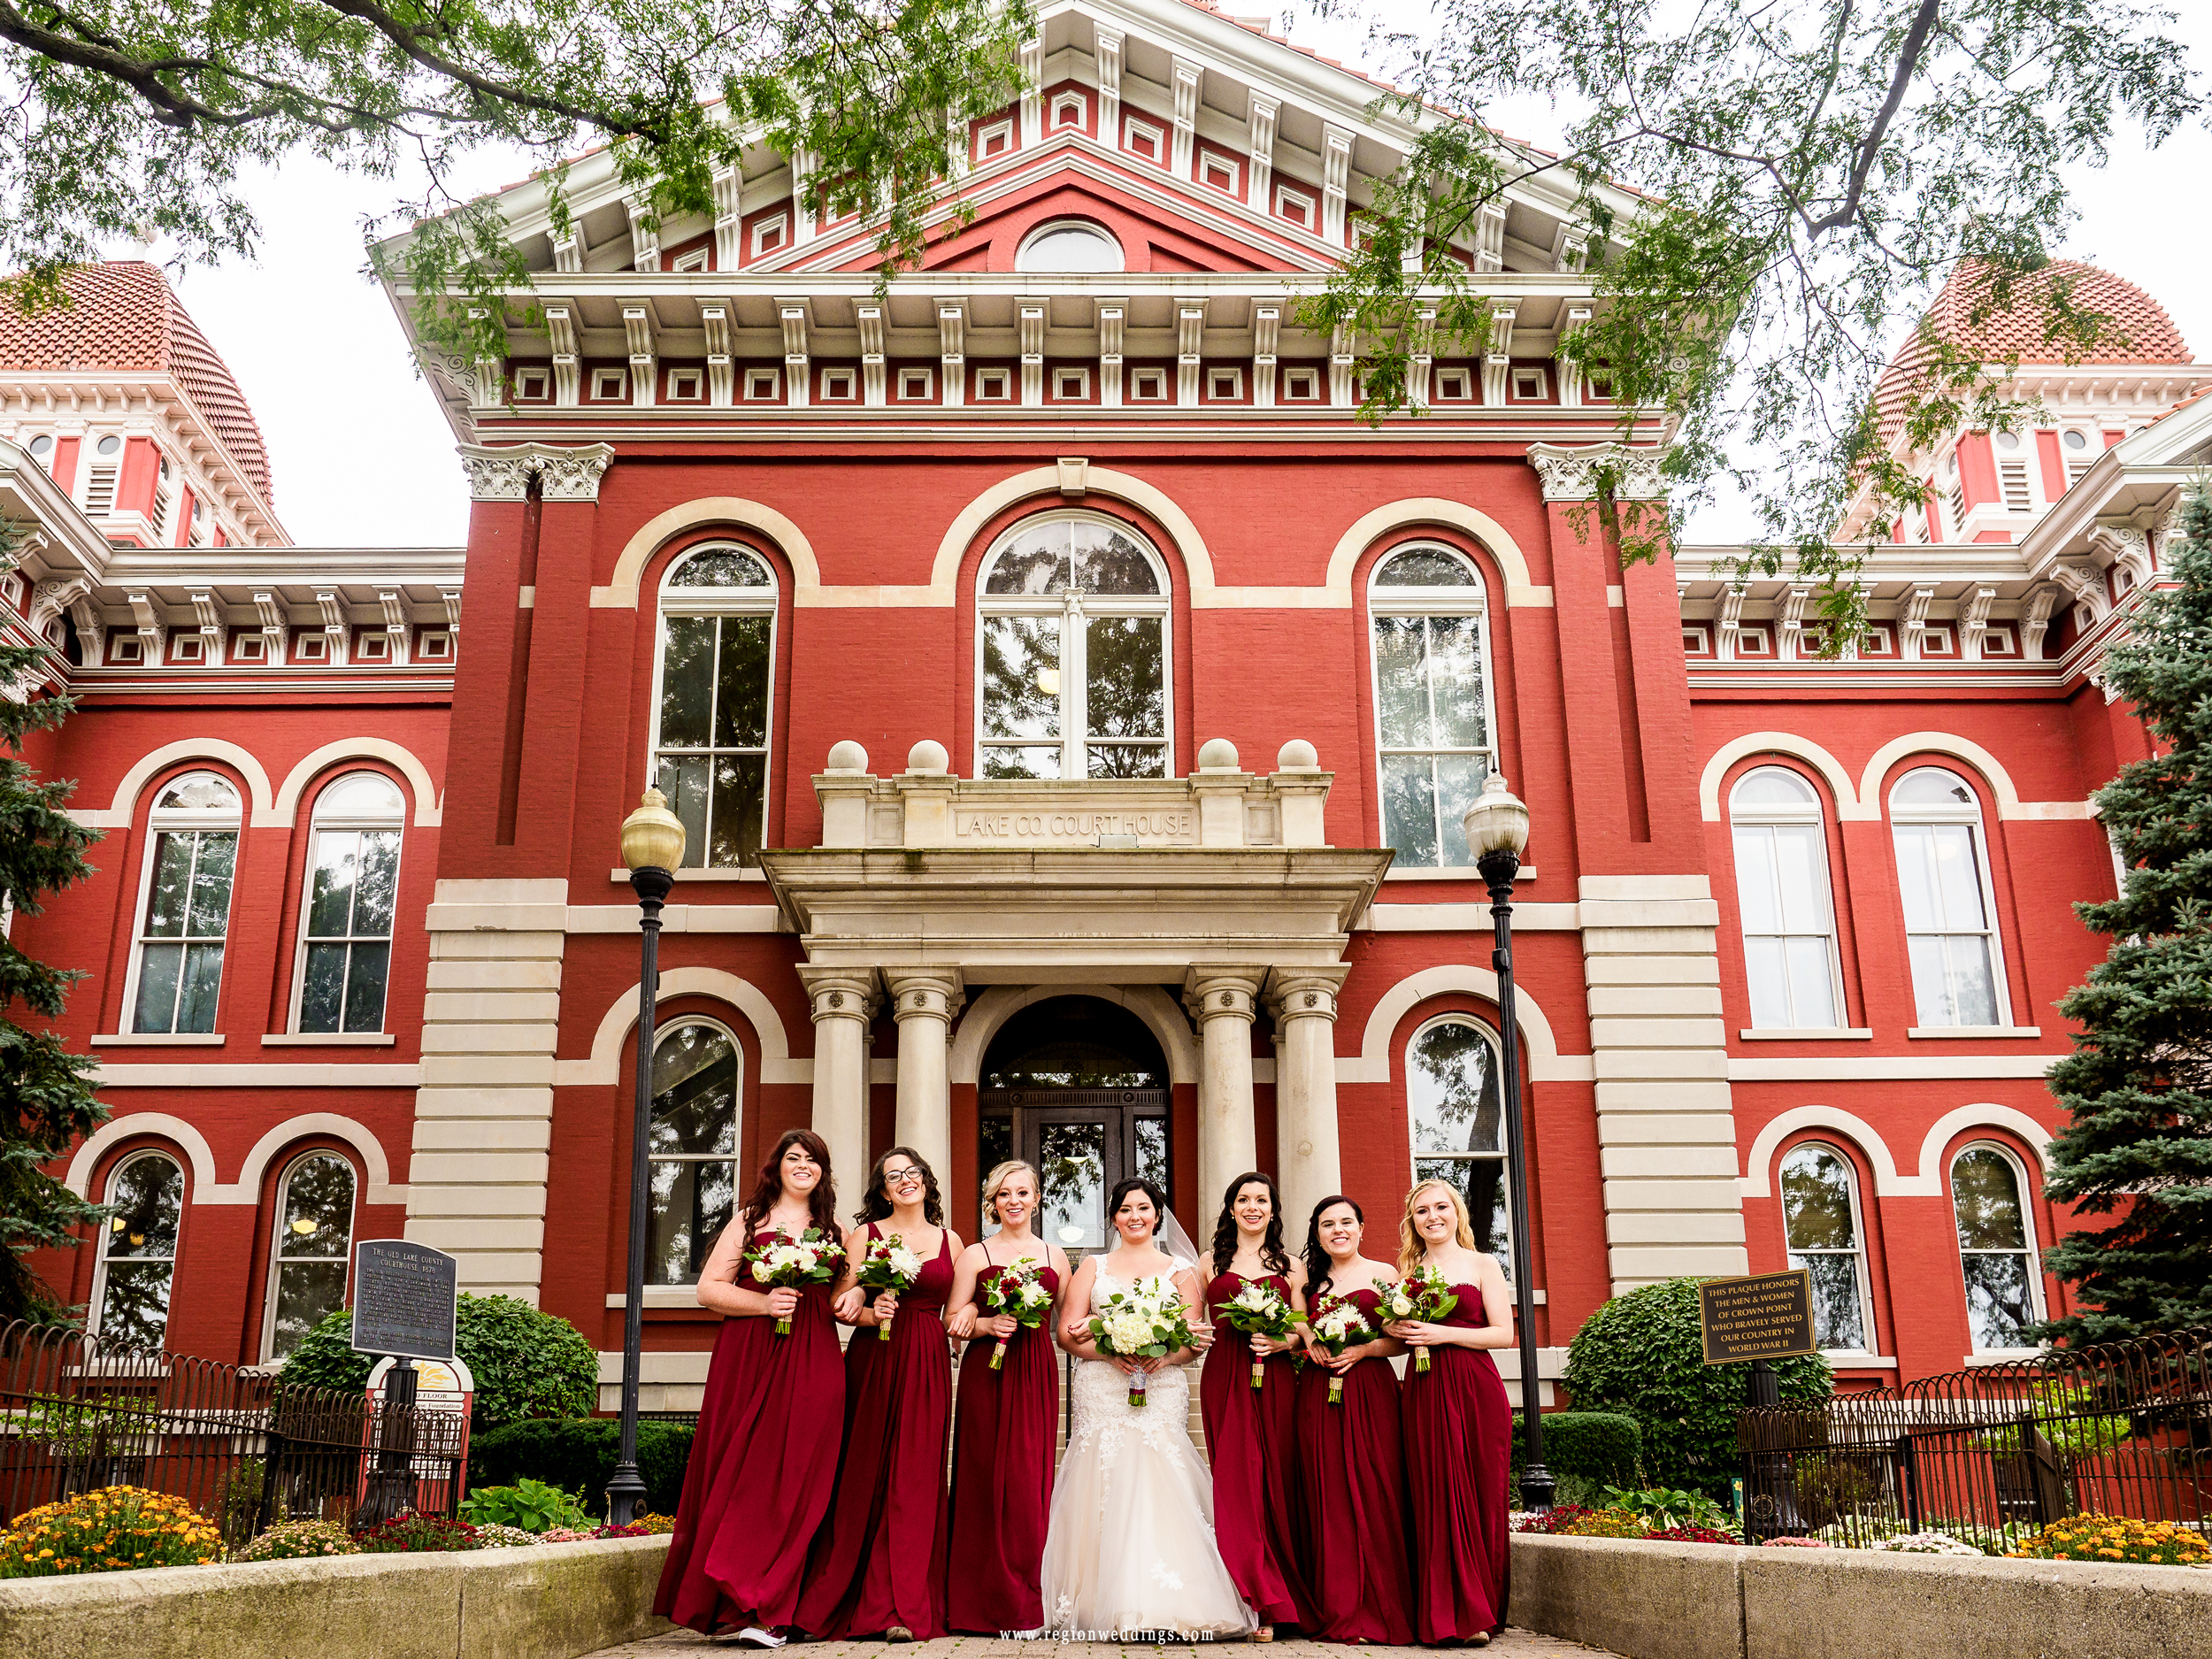 Bride and bridesmaids in front of the Old Crown Point Courthouse.